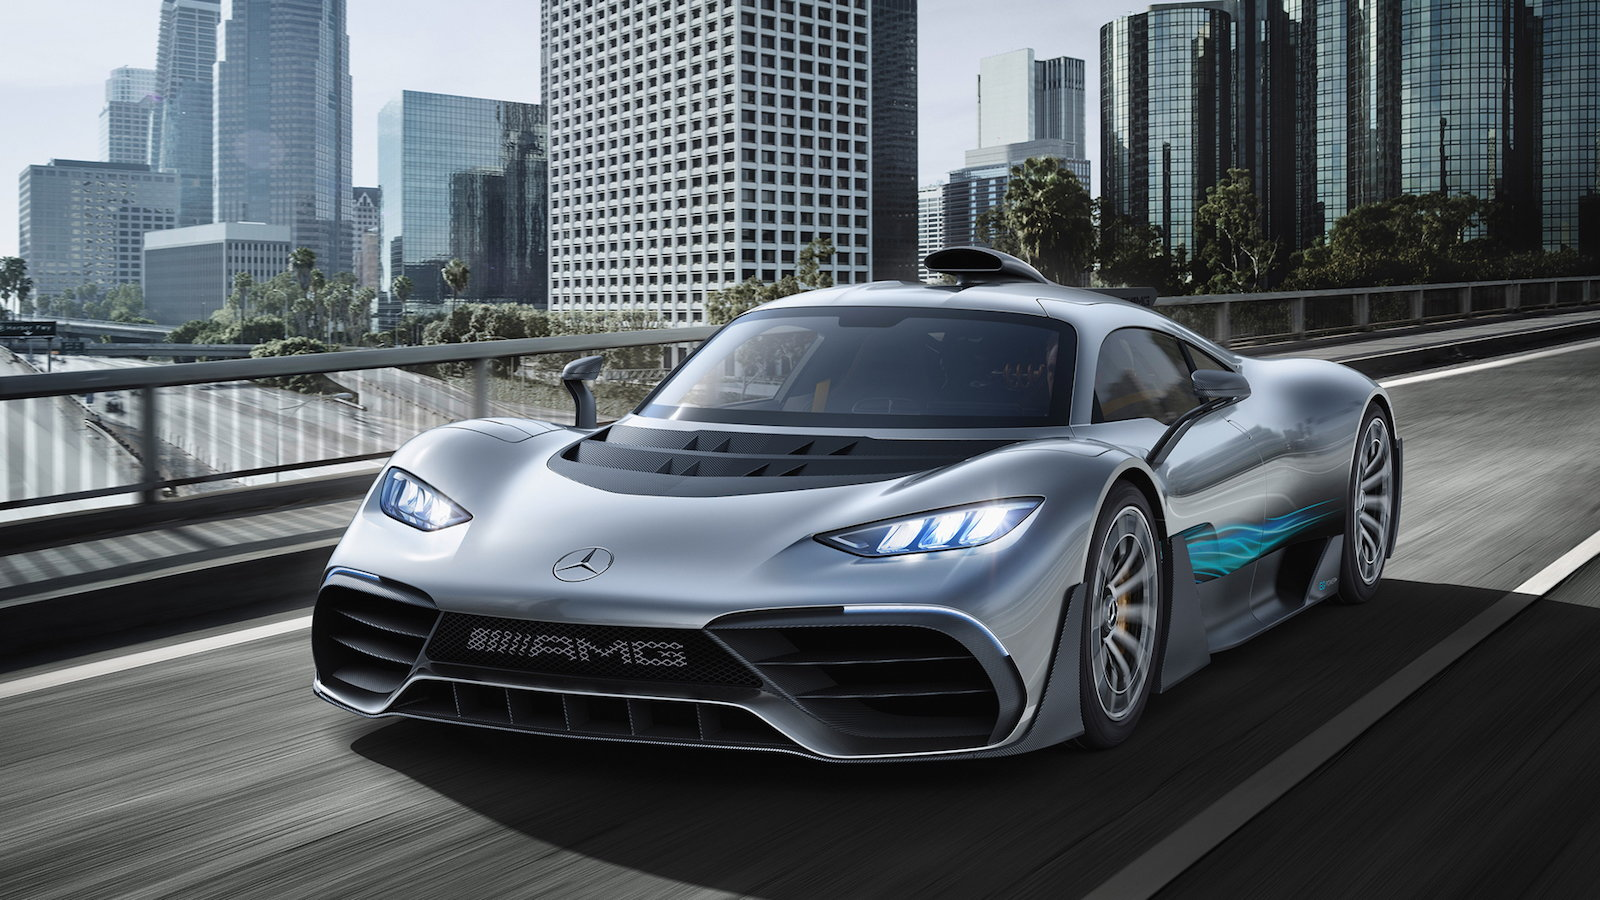 The Mercedes Project One